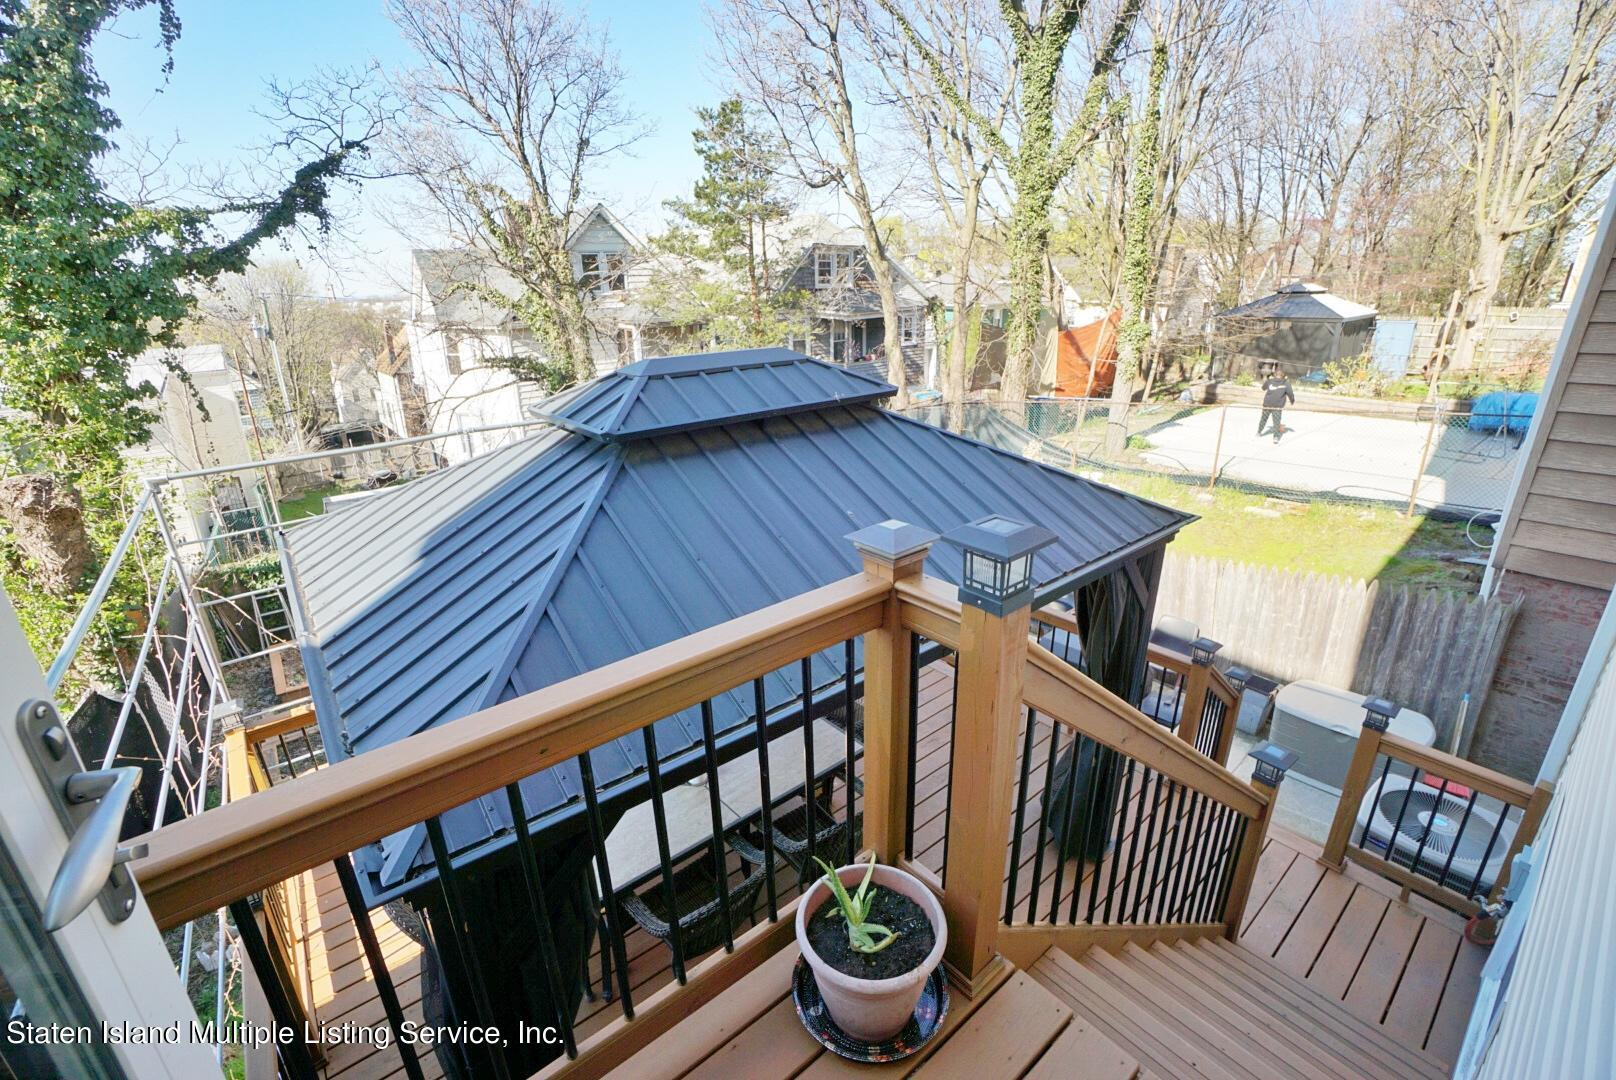 Single Family - Detached 171 Benziger Avenue  Staten Island, NY 10301, MLS-1145235-40